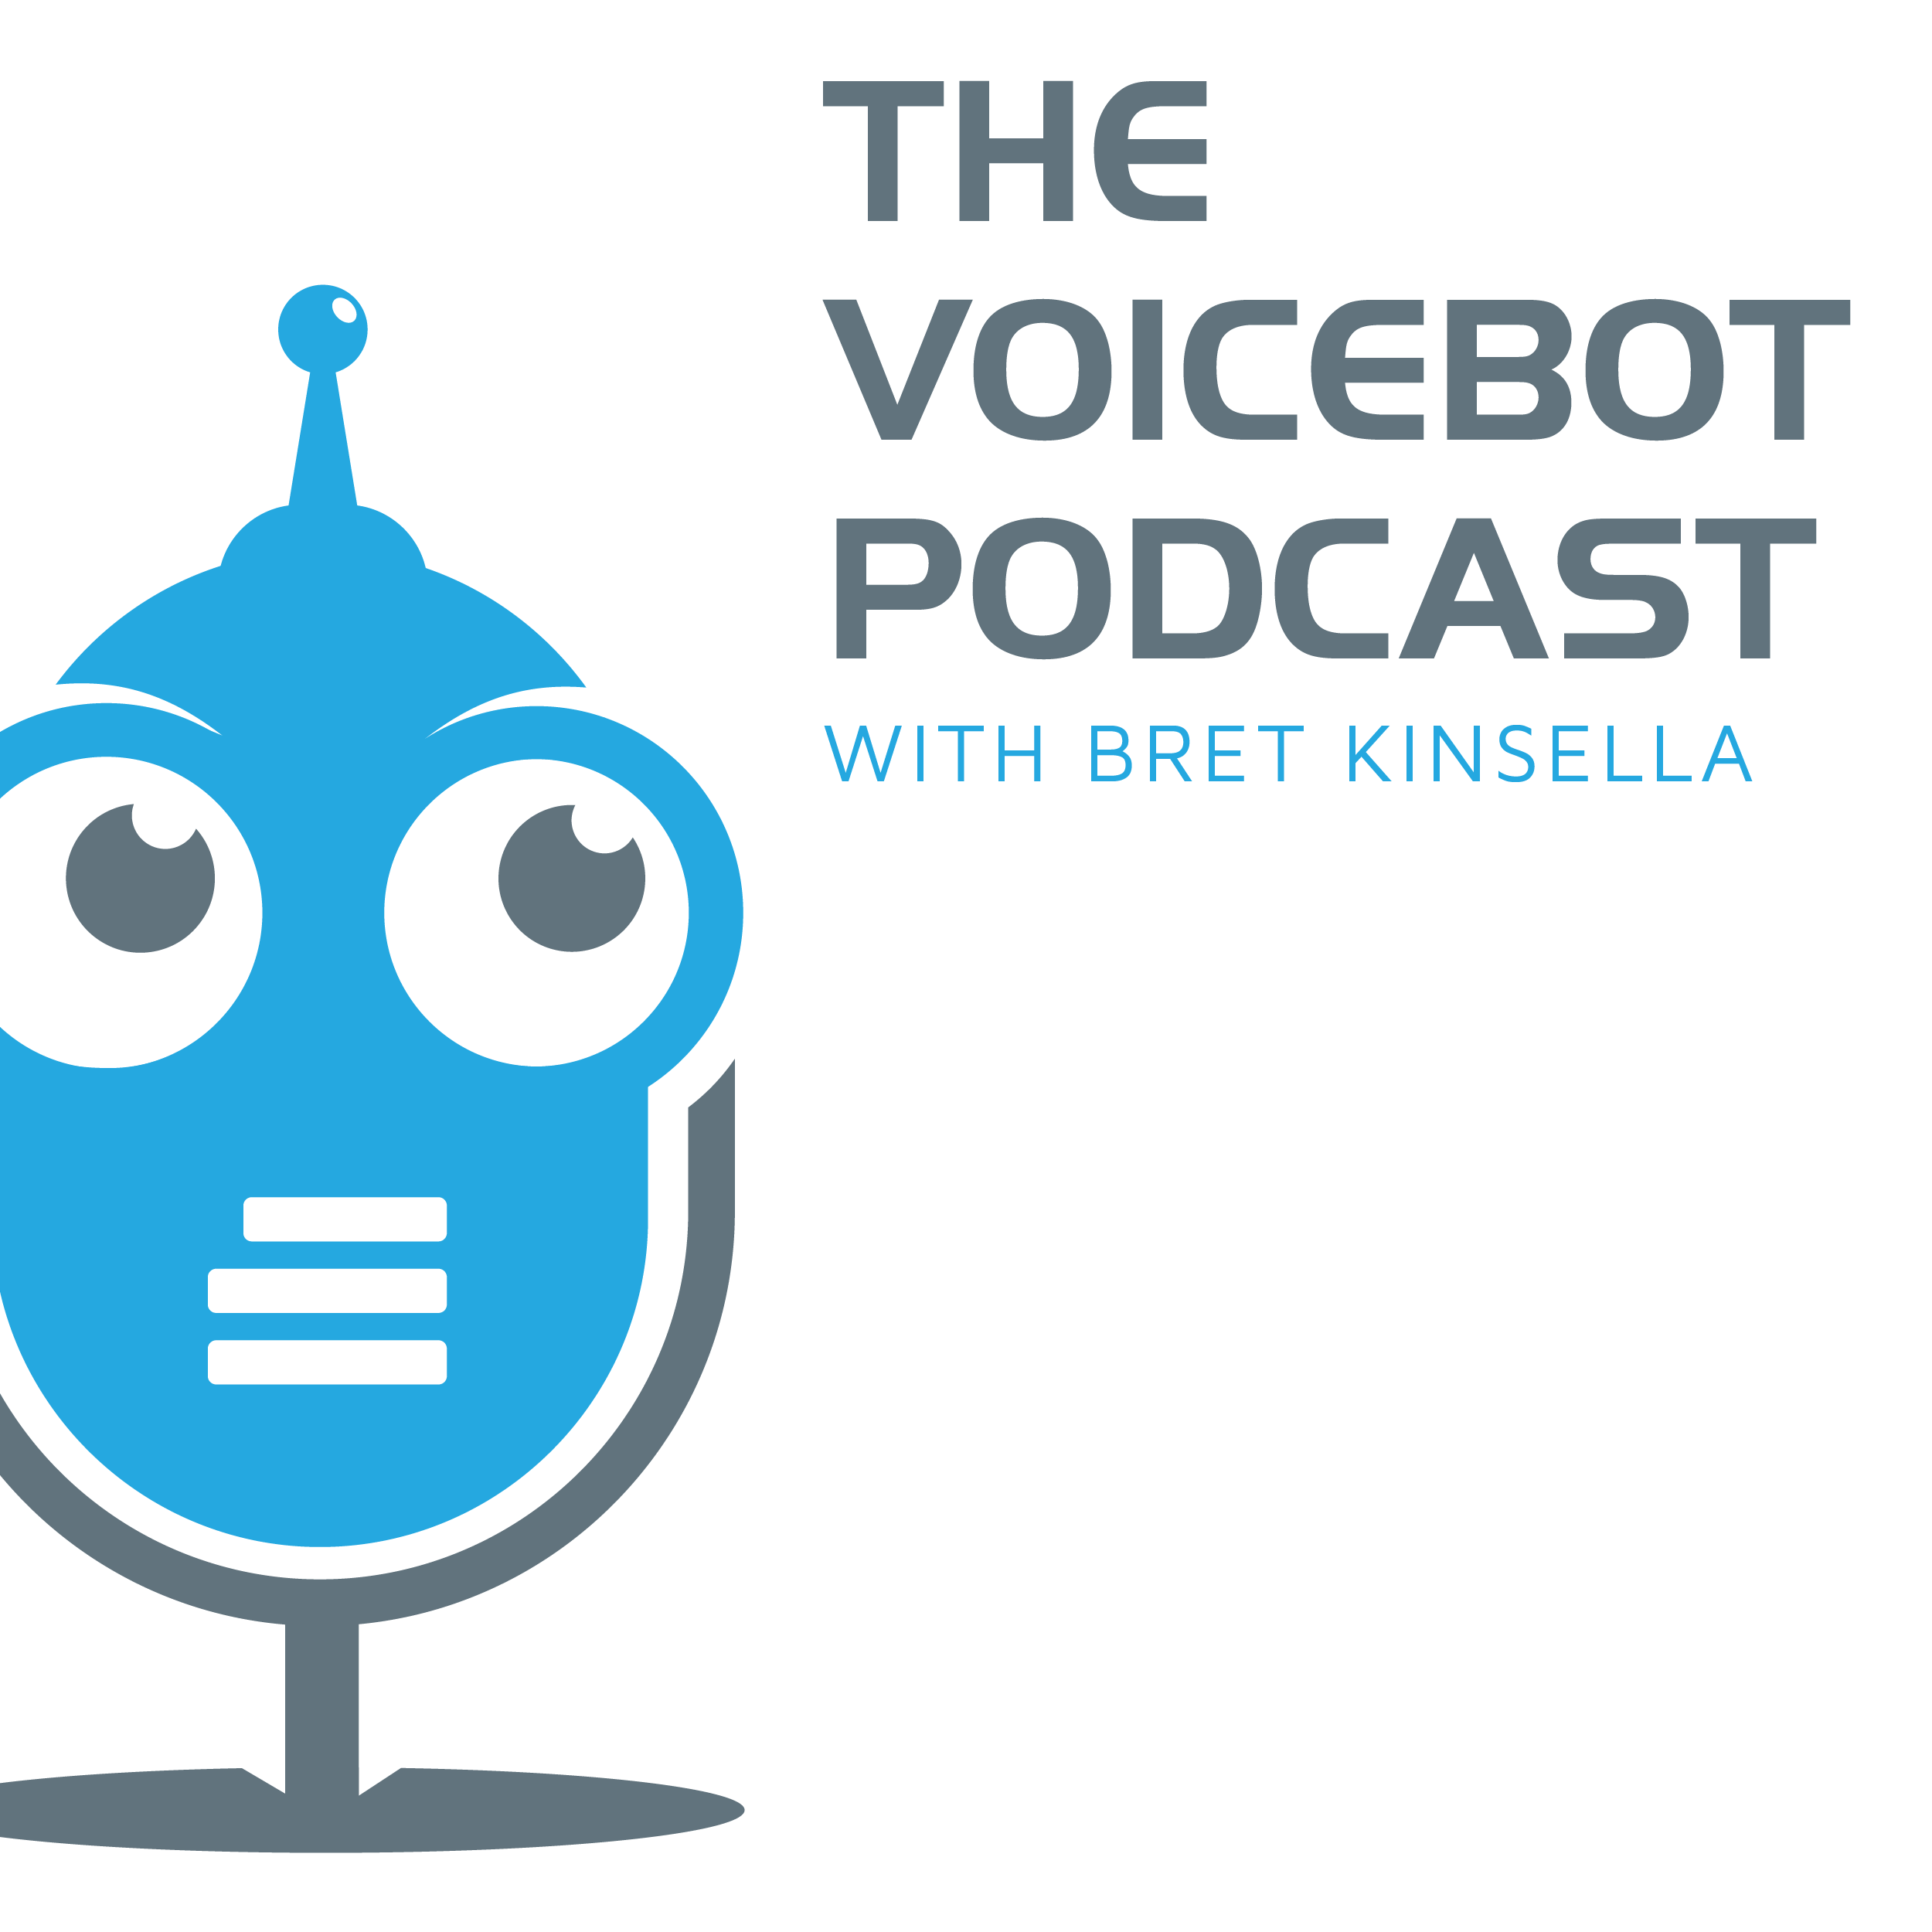 The Voicebot Podcast show art